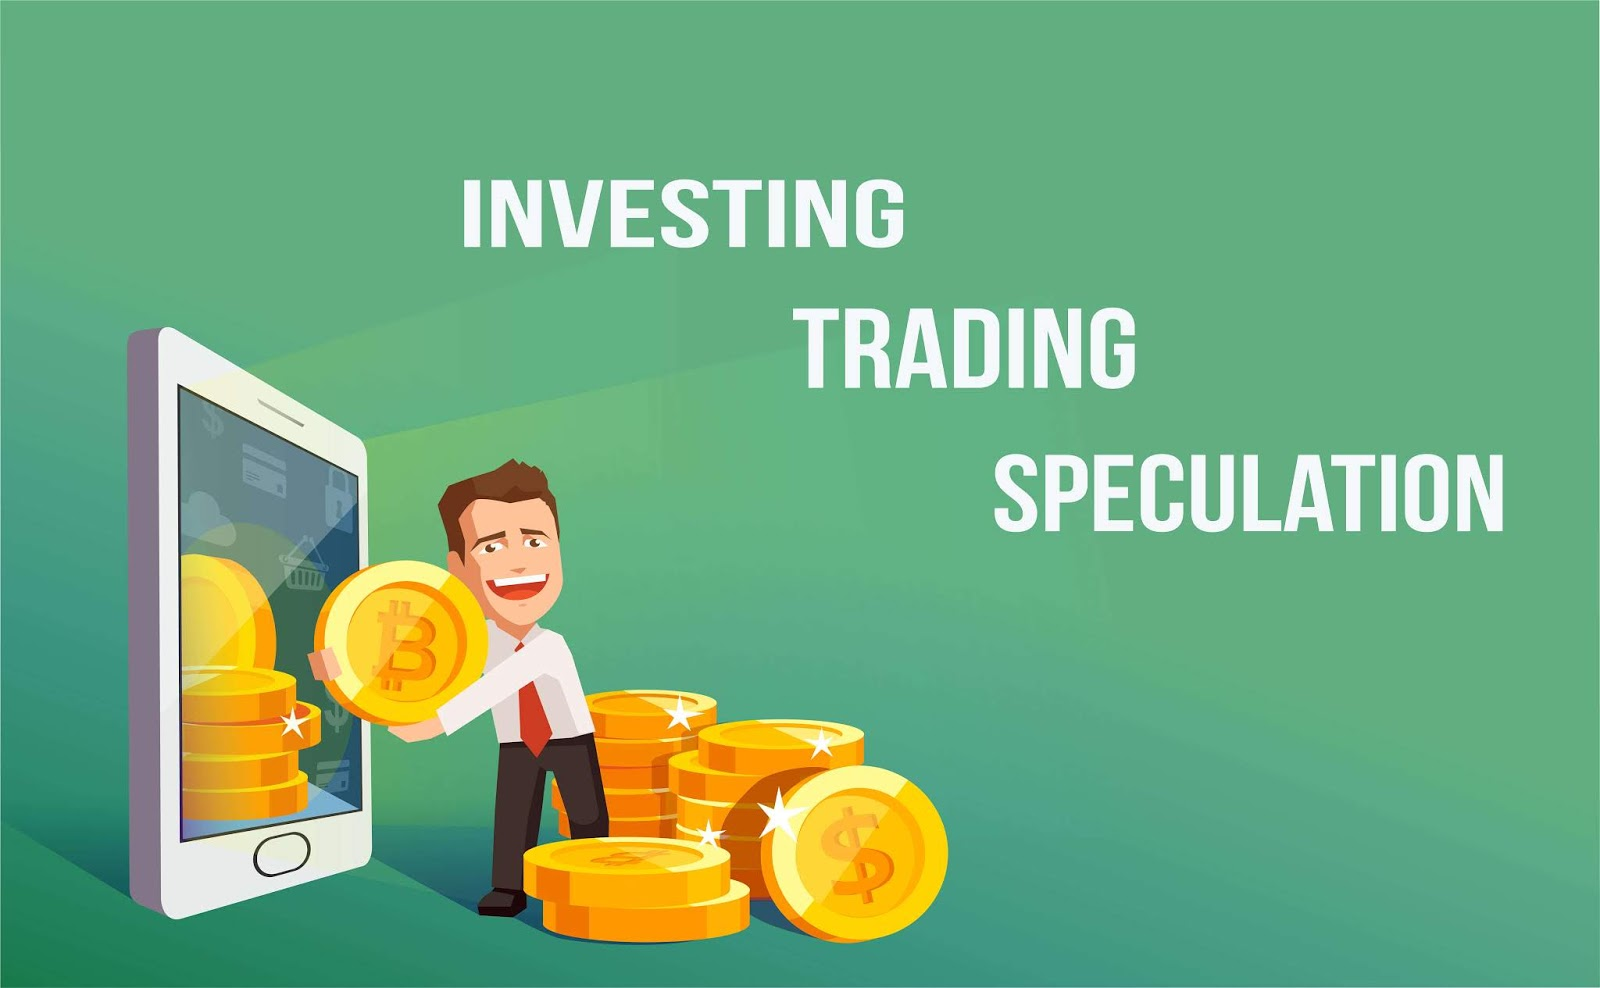 Investing, Trading, Speculation